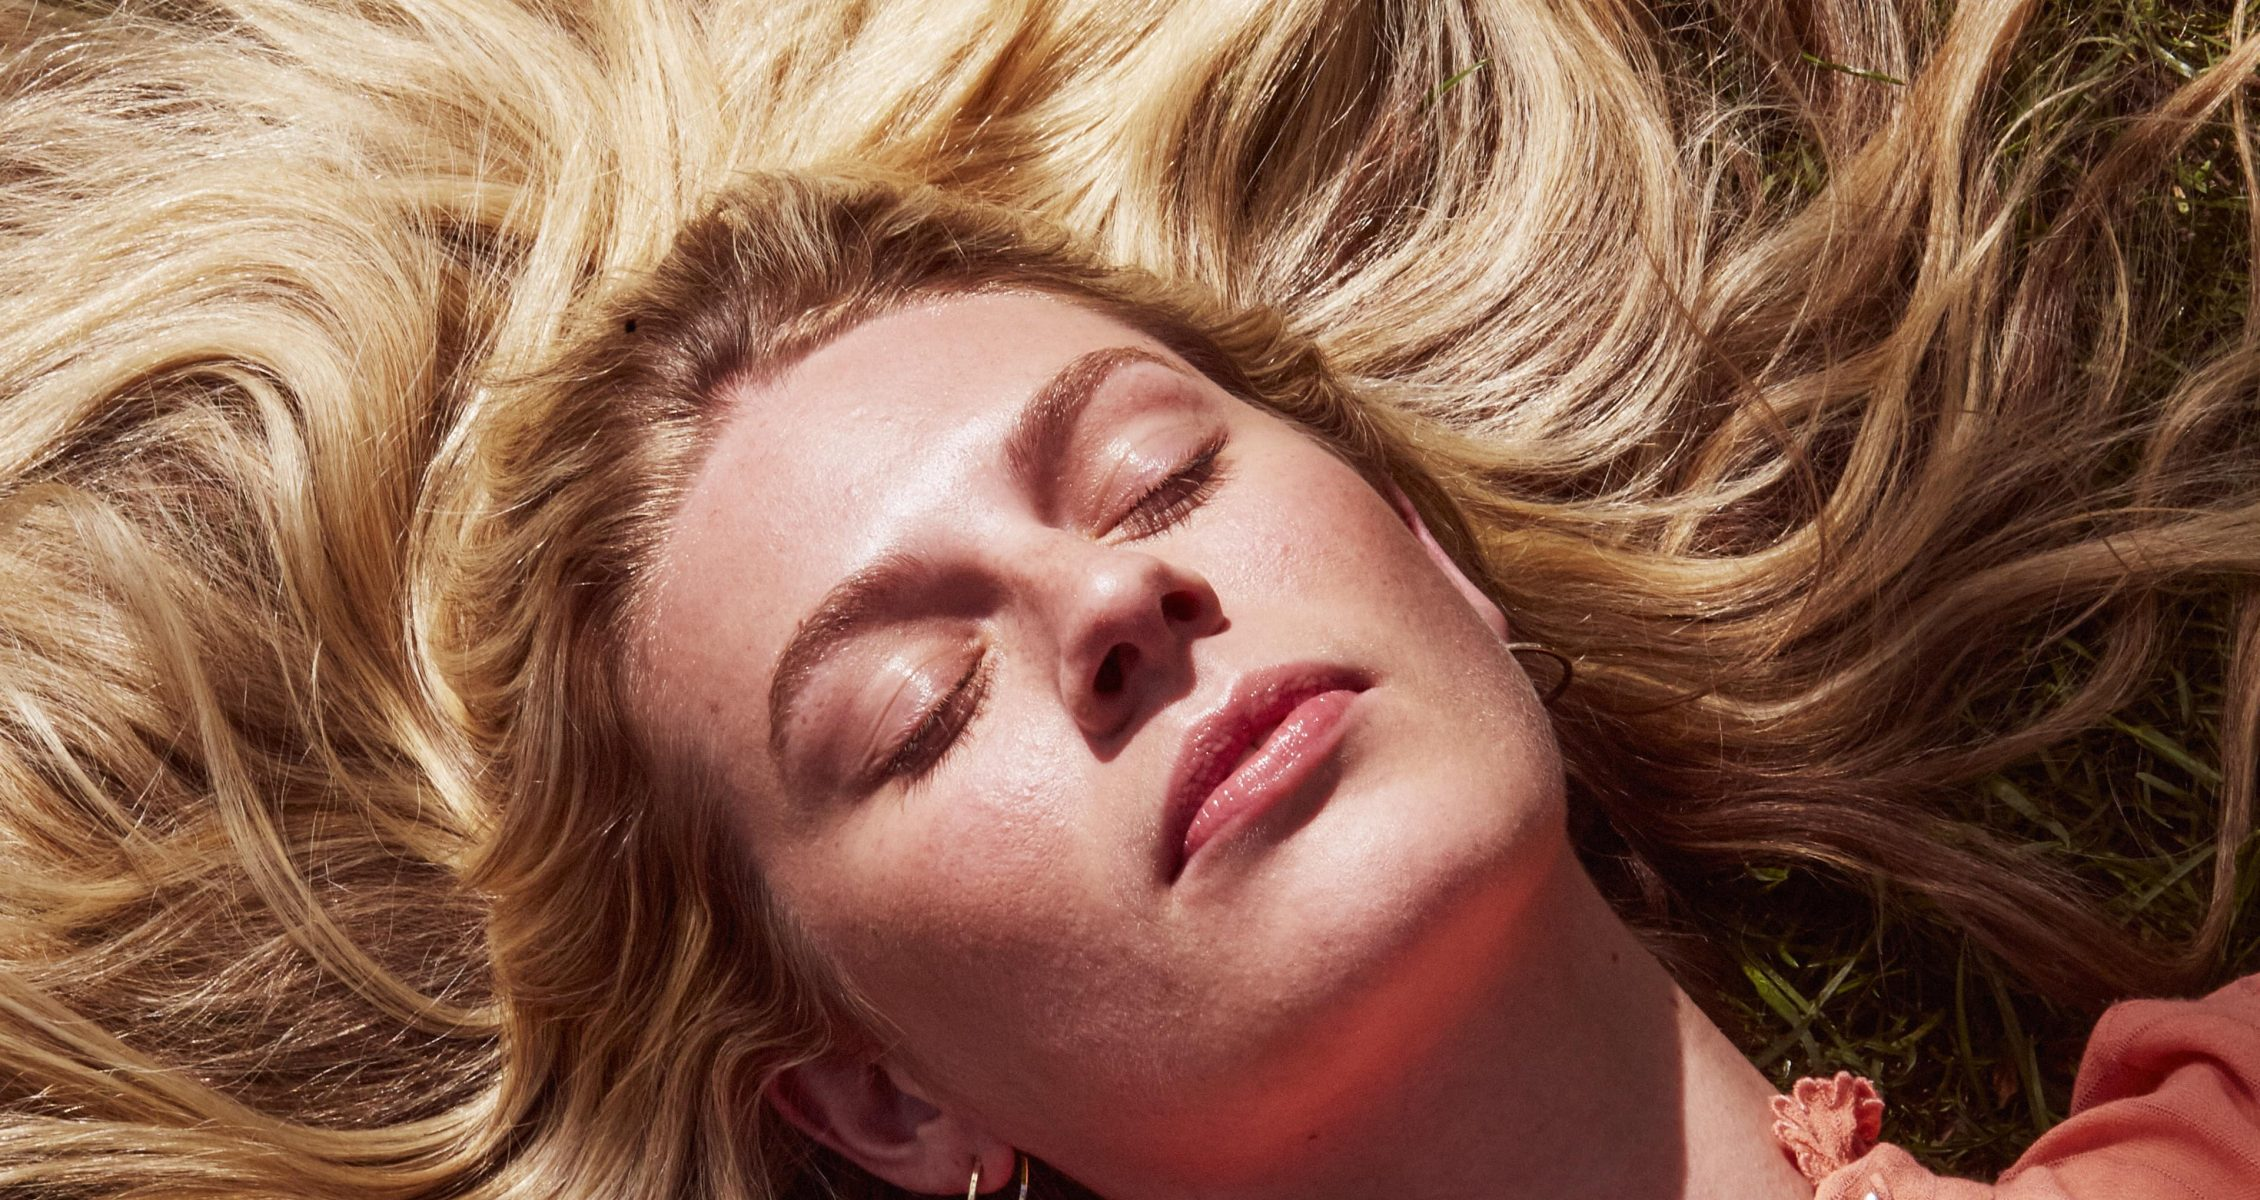 Prose model with shiny, long, blonde hair laying down with her eyes closed and her hair spread out around her